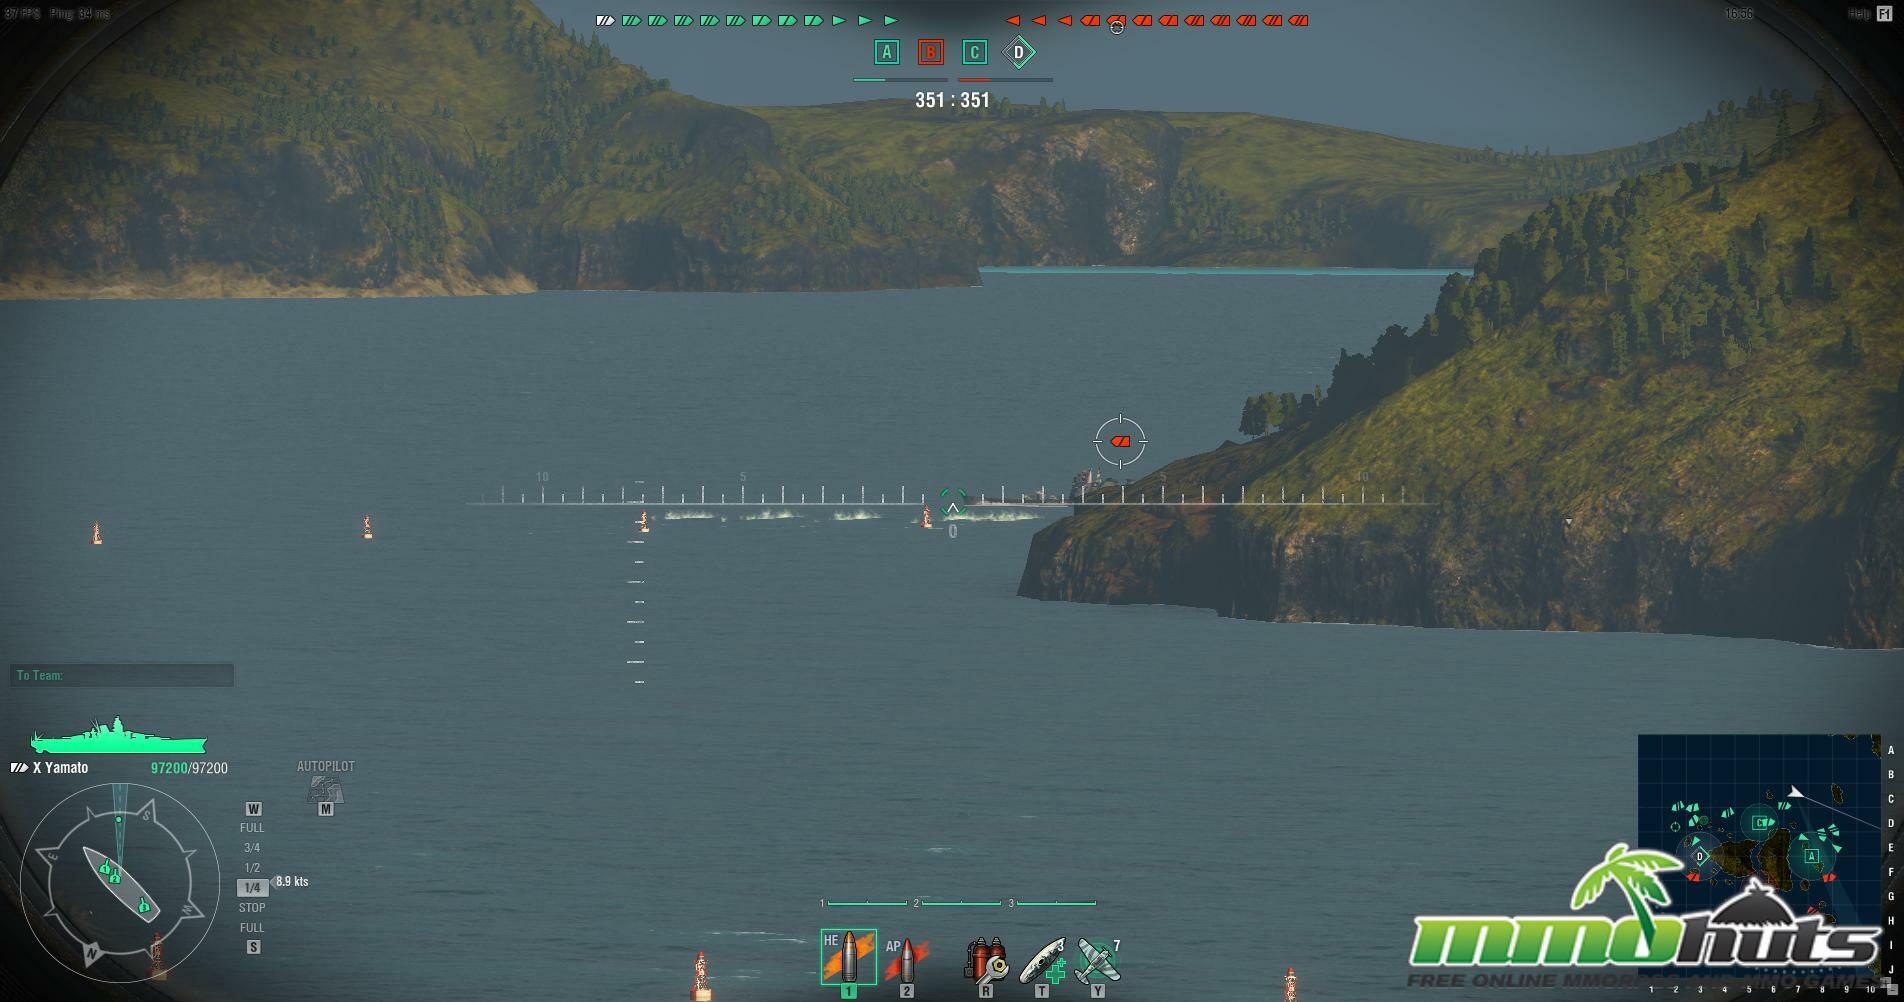 worldofwarships 2015-10-01 16-31-41-00